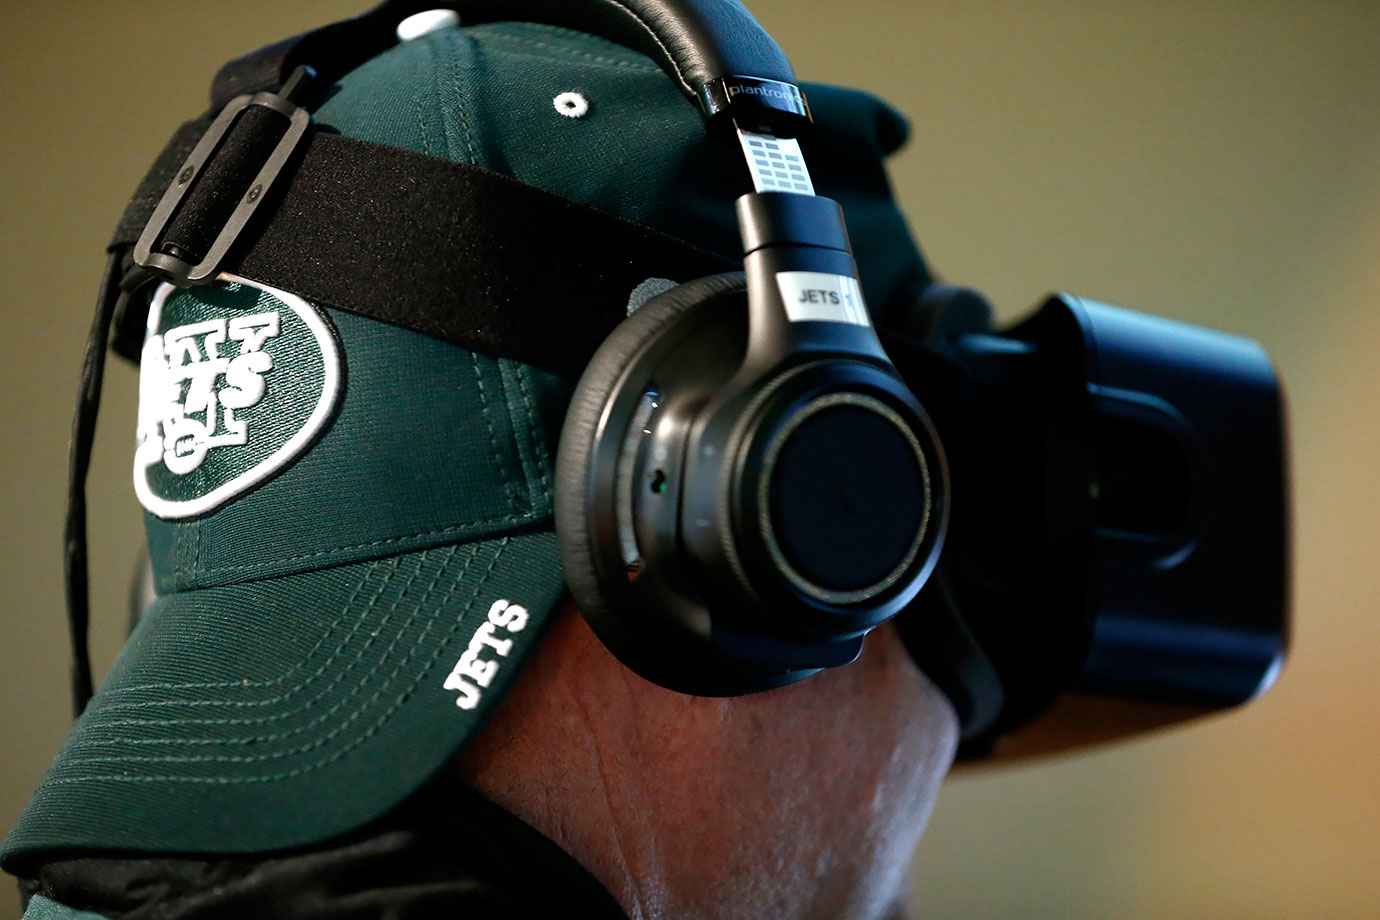 A New York Jets fan watches a virtual reality video before a game against the Tennessee Titans on Dec. 13, 2015 at MetLife Stadium in East Rutherford, N.J.